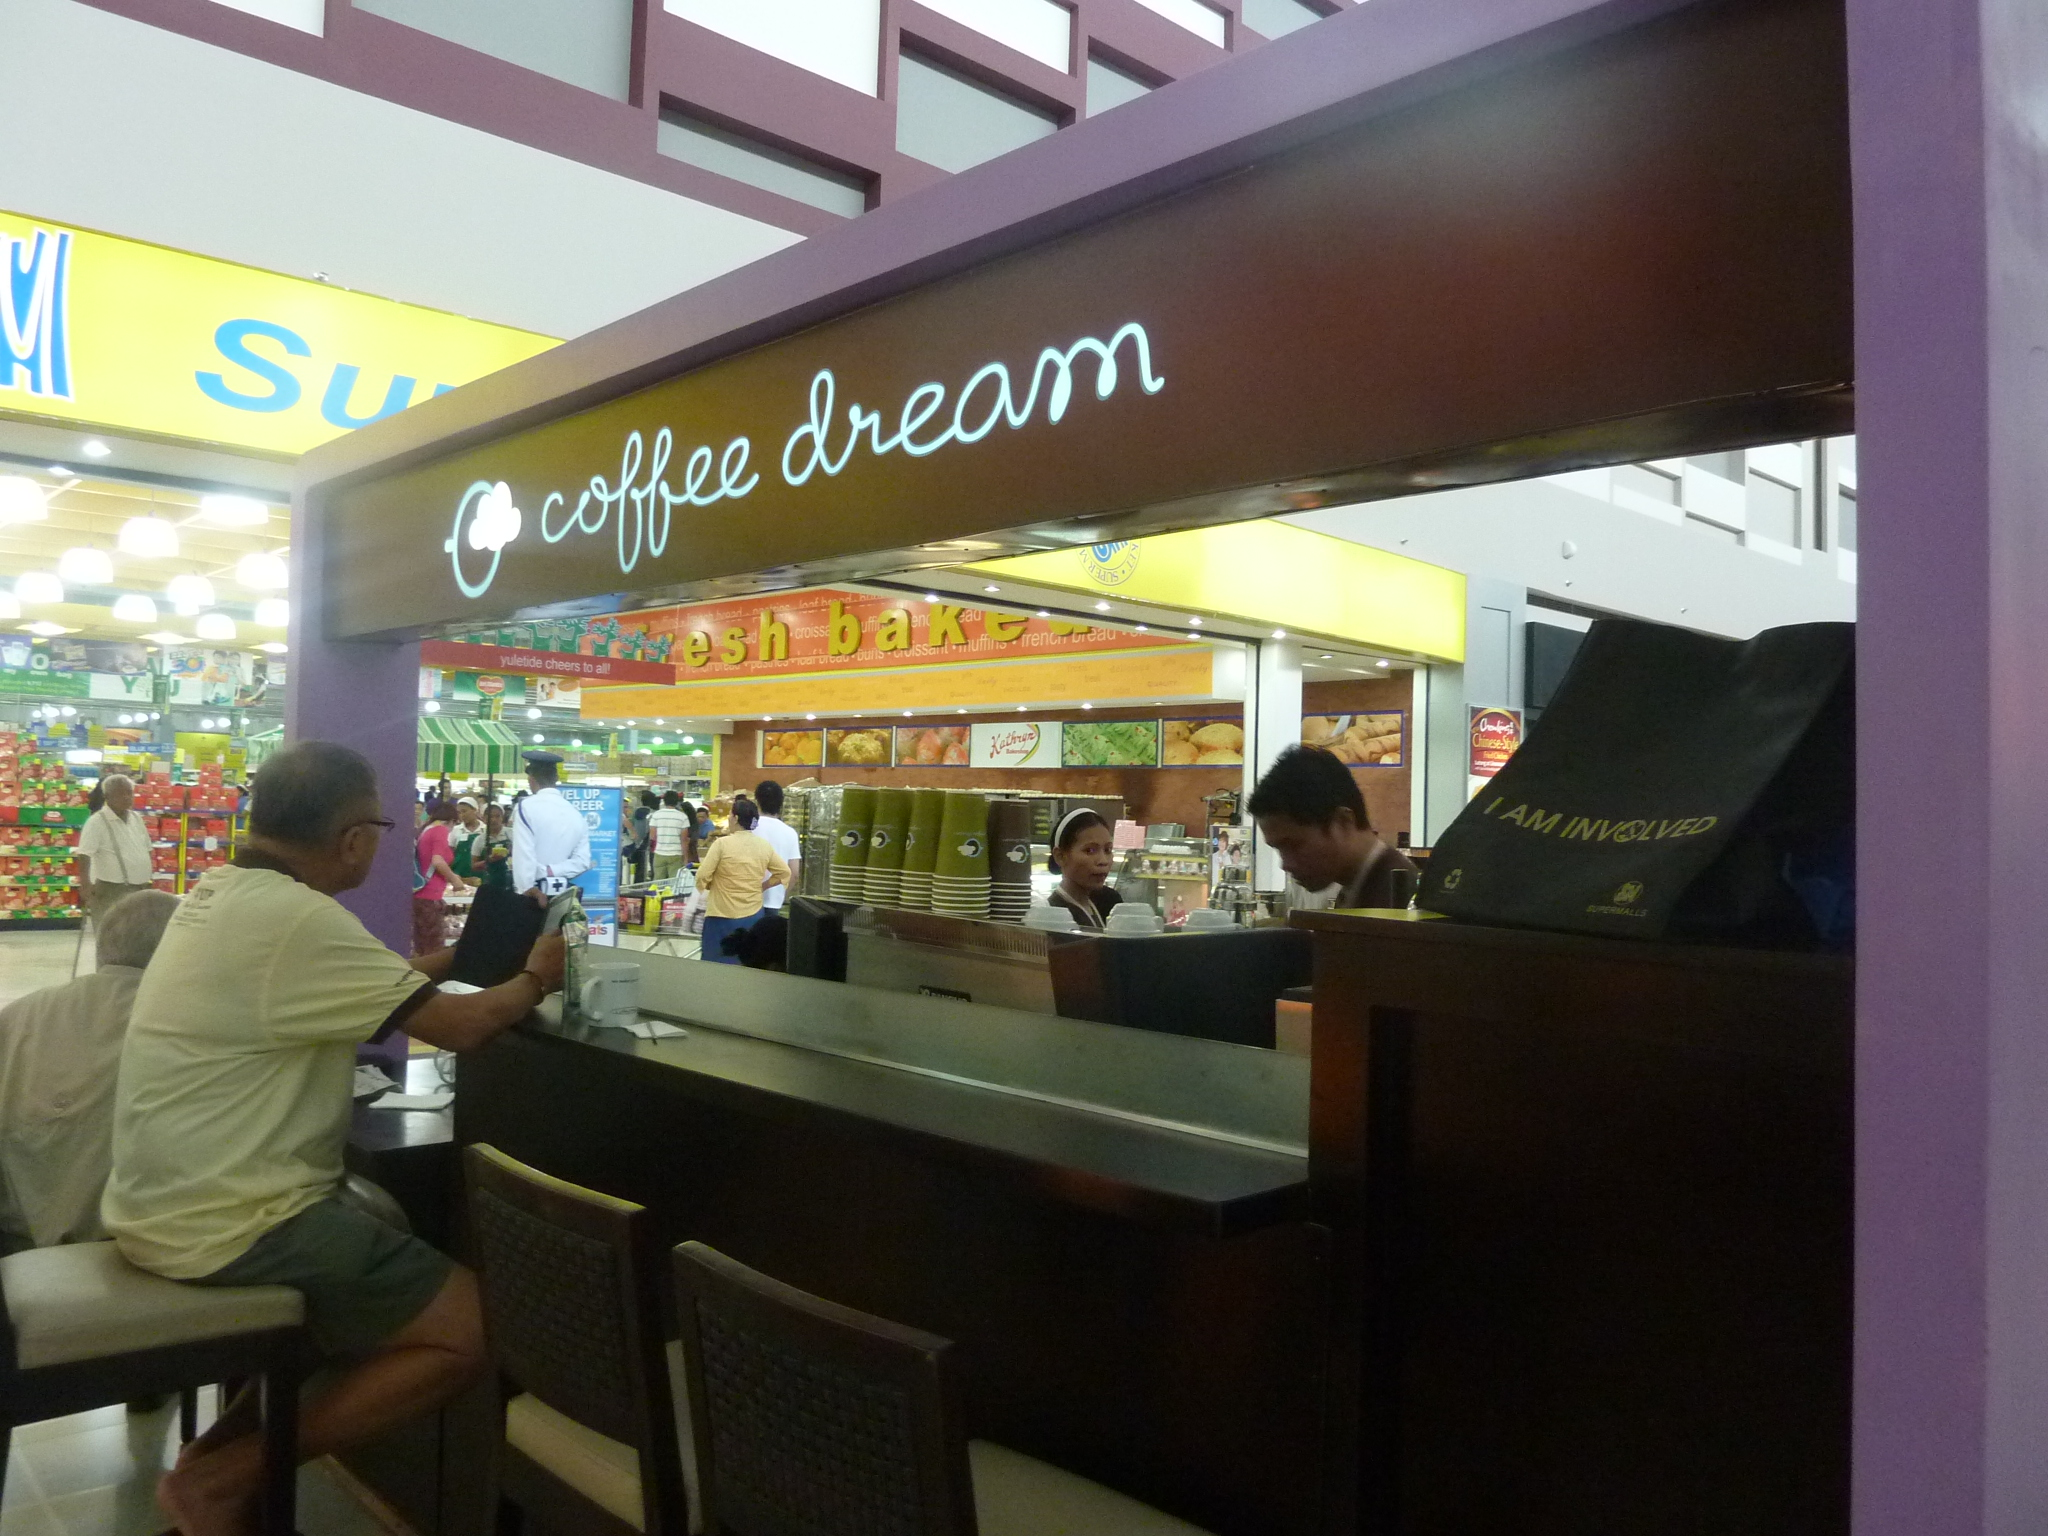 coffee dream sm cagayan de oro